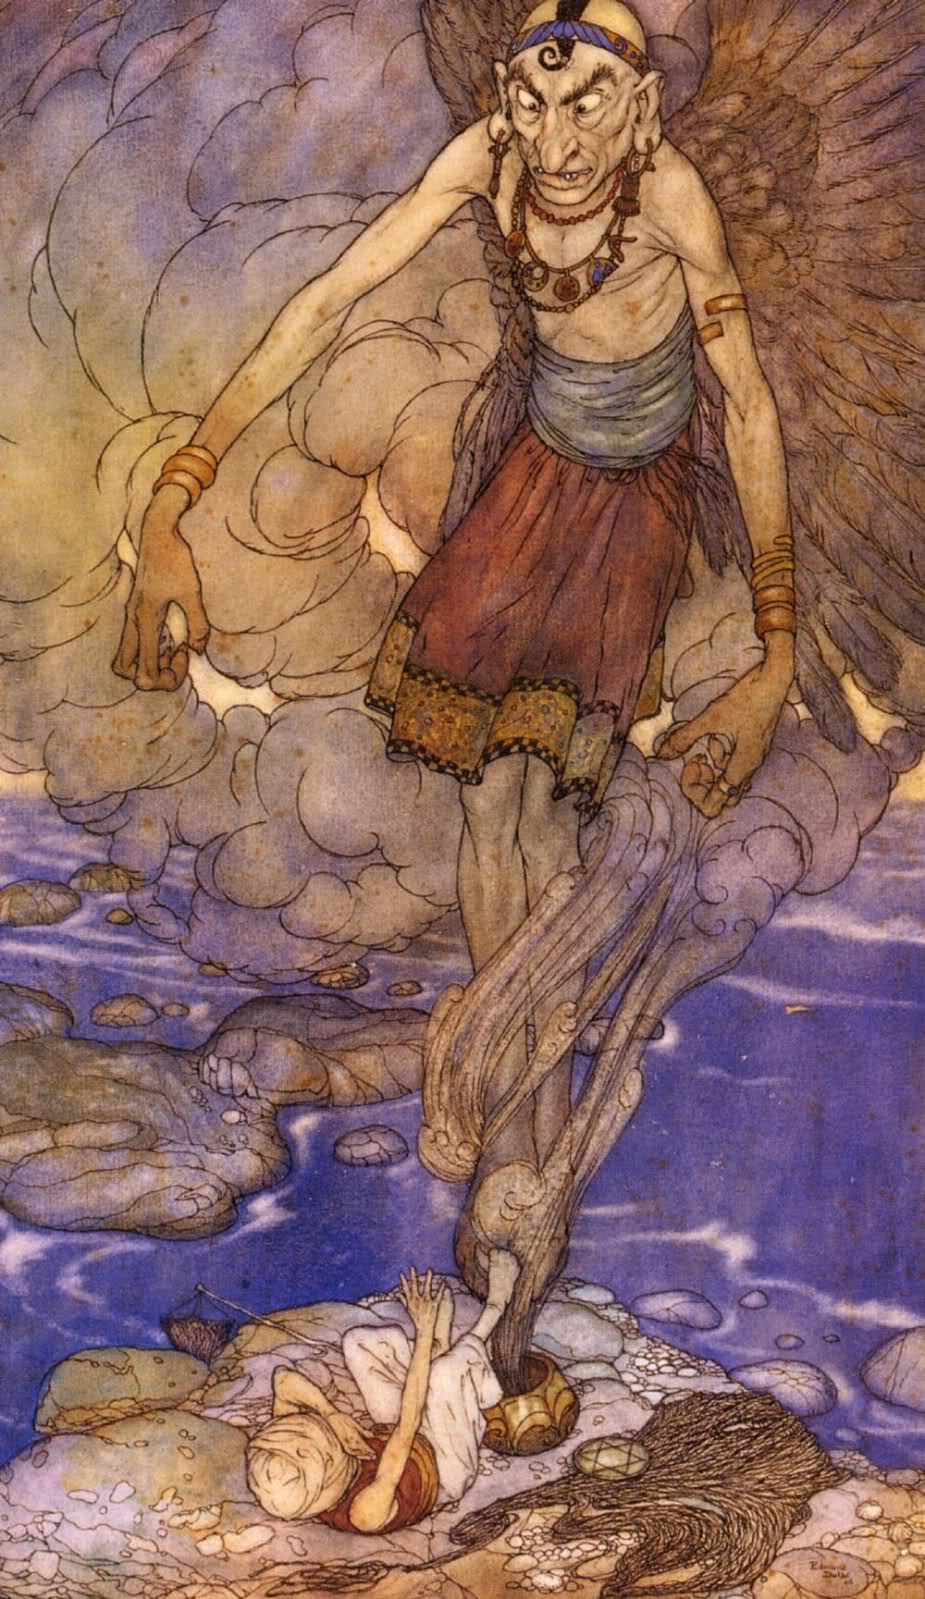 """Edmund Dulac - """"And there in its midst stood a  mighty Genie."""" Illustration from The Fisherman and the Genie' found in Stories from The Arabian Nights (1907)"""